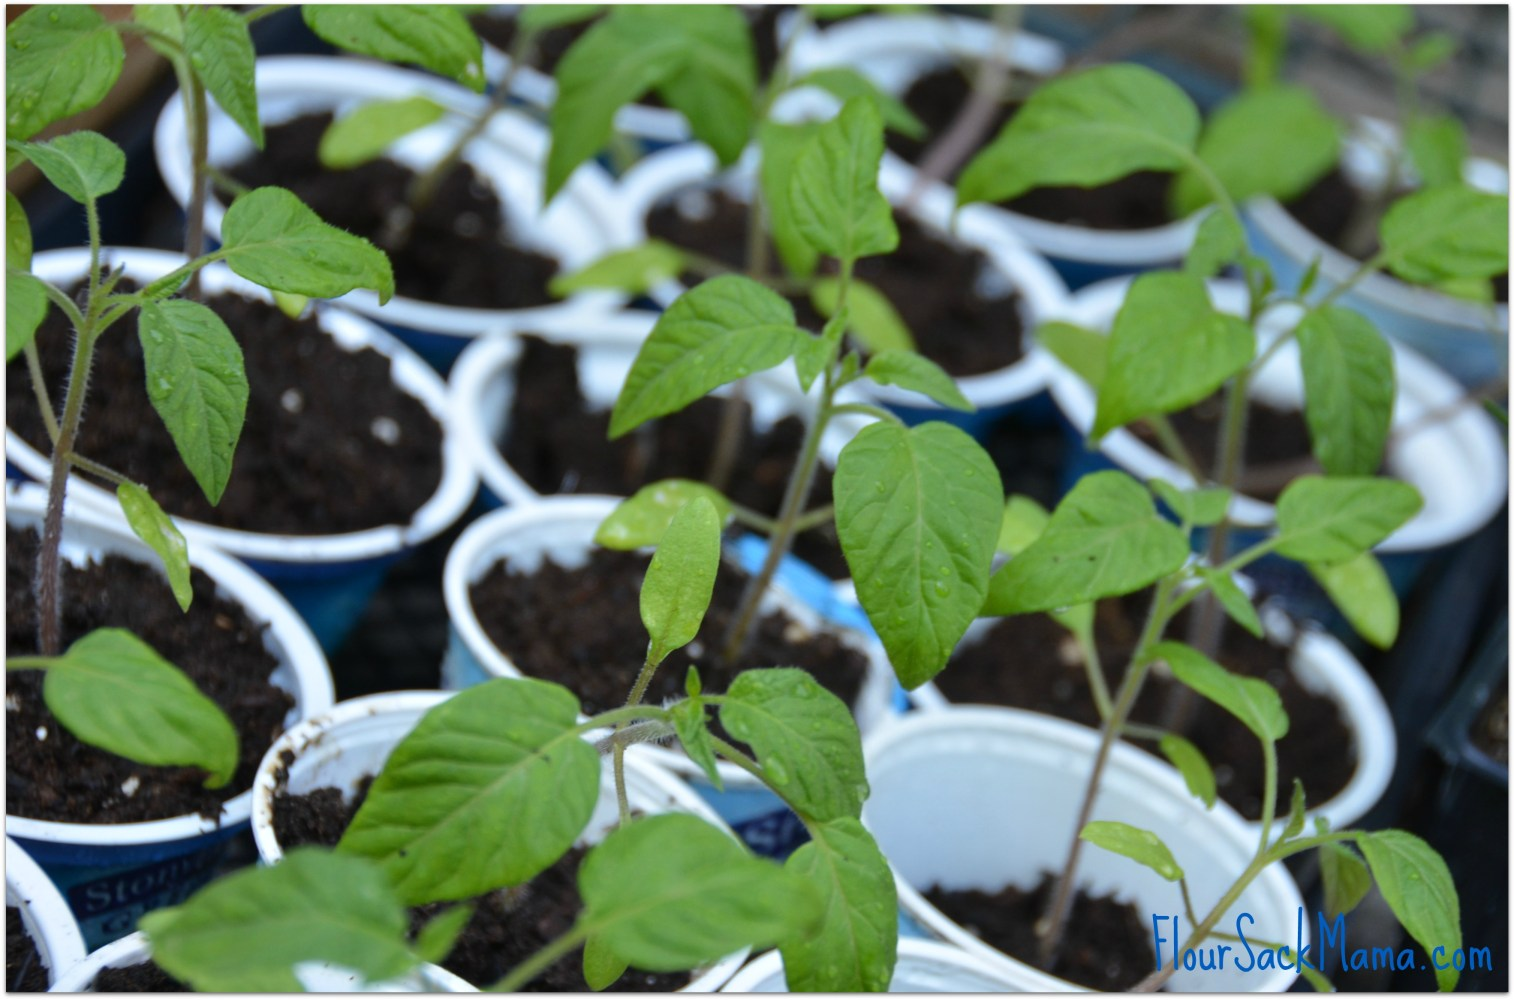 seedlings in cups - tomato and pepper plants